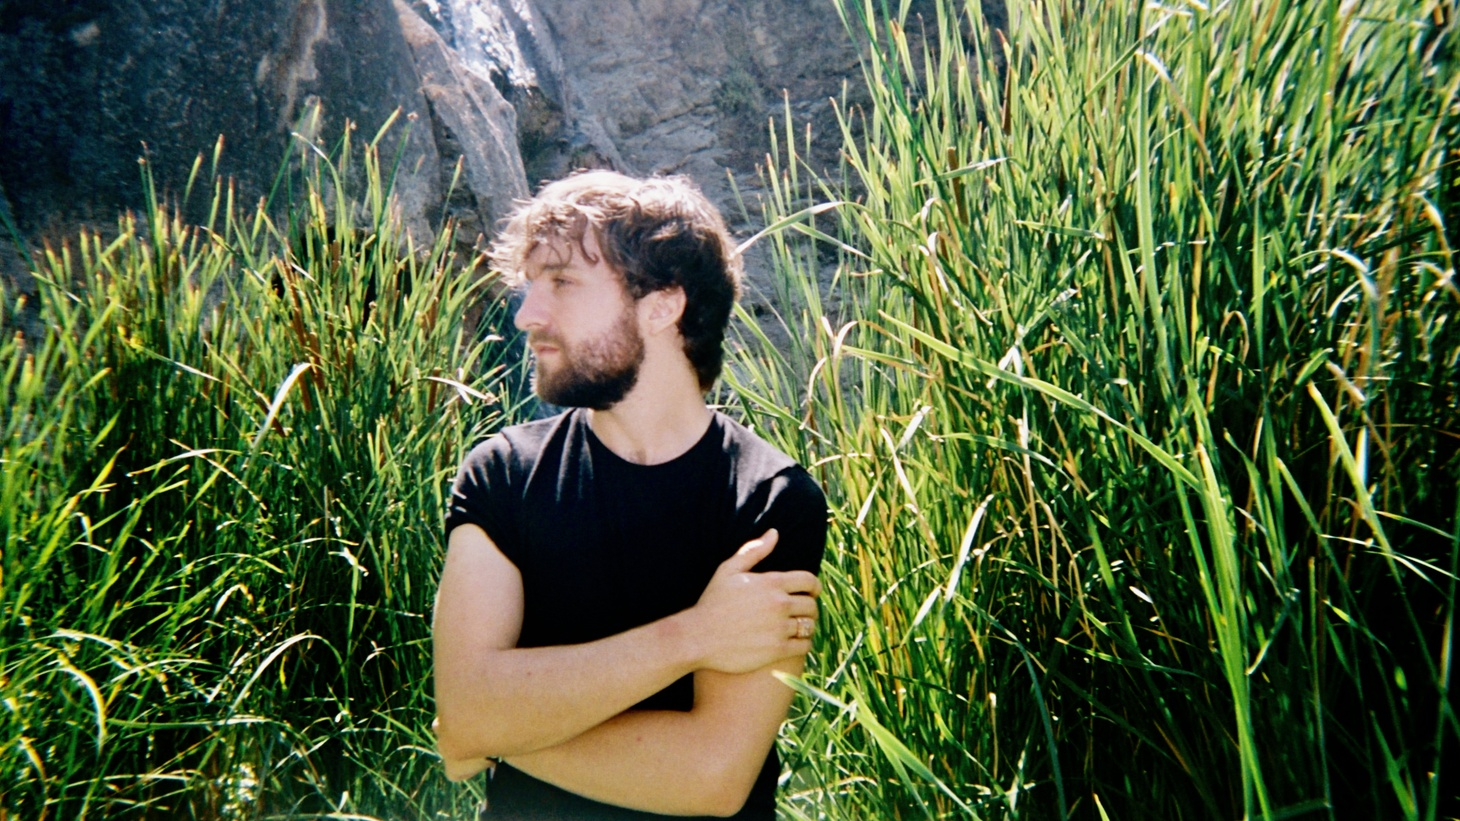 The serene and lush new single from SoCal's Angelo De Augustine is a gentle ballad featuring Sufjan Stevens, who contributes on vocals and acoustic guitar. Recommended listening for fans of ravishing melody.